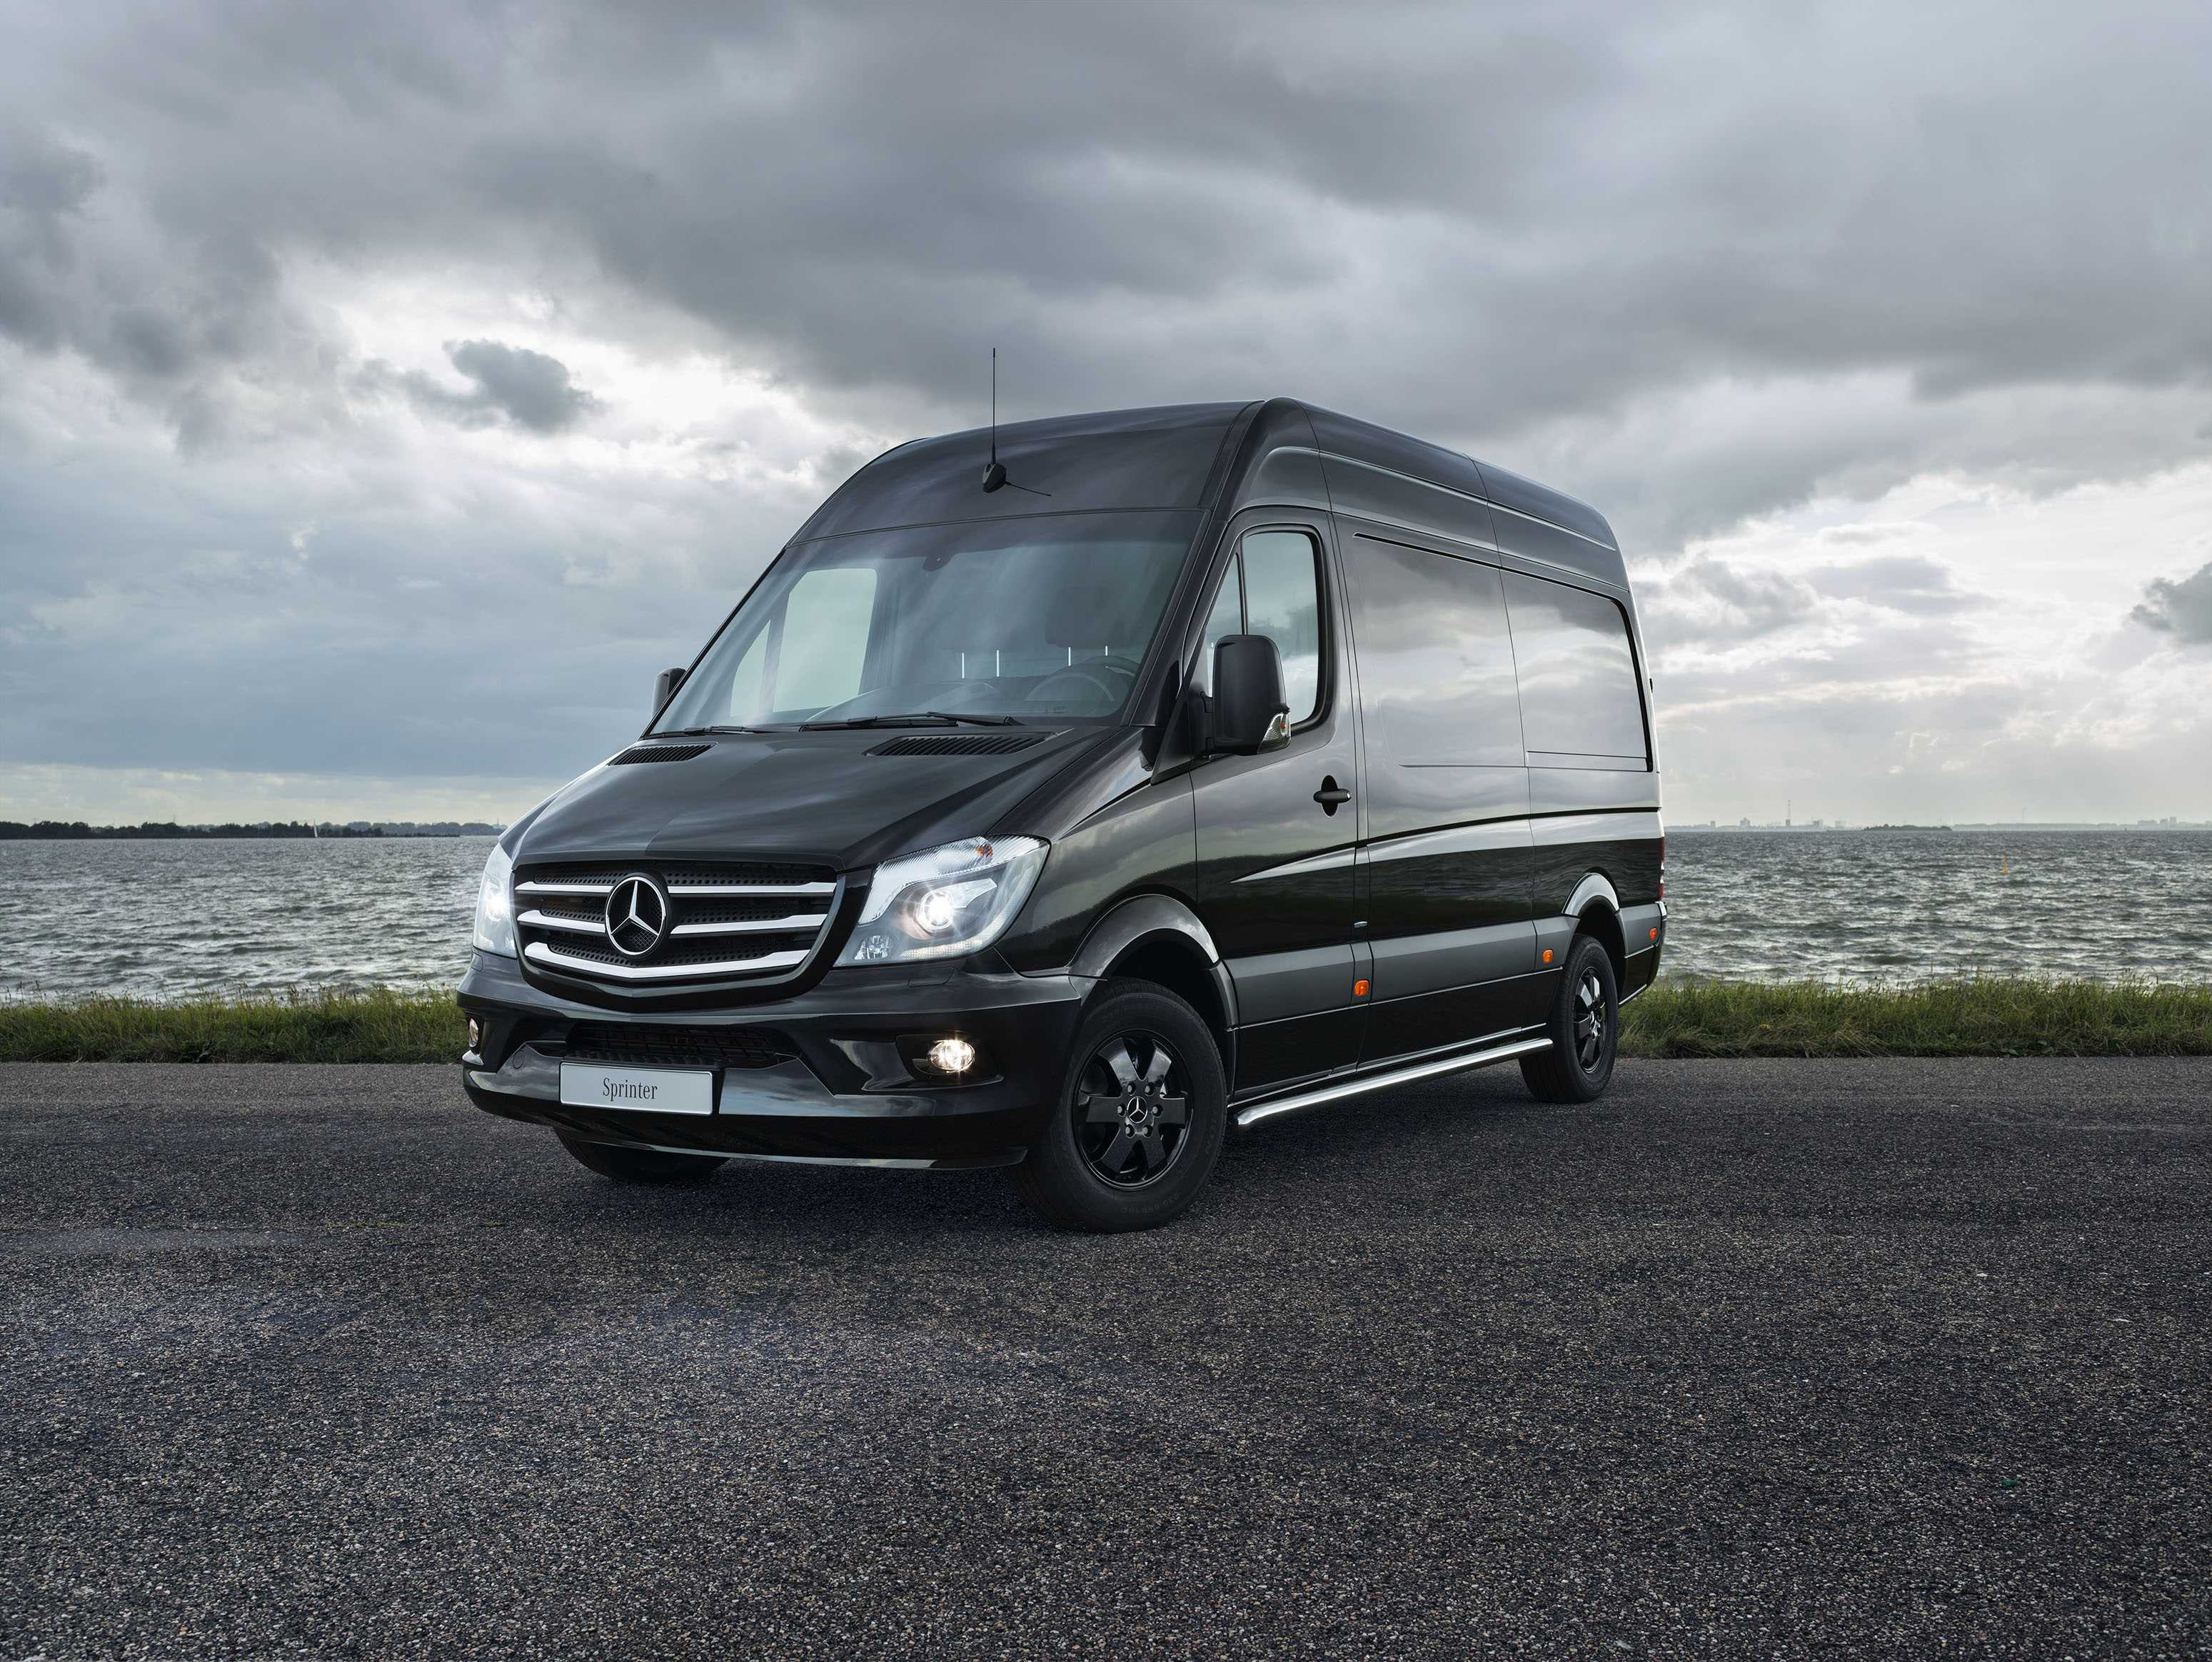 Mercedes-Benz Sprinter Black 2016